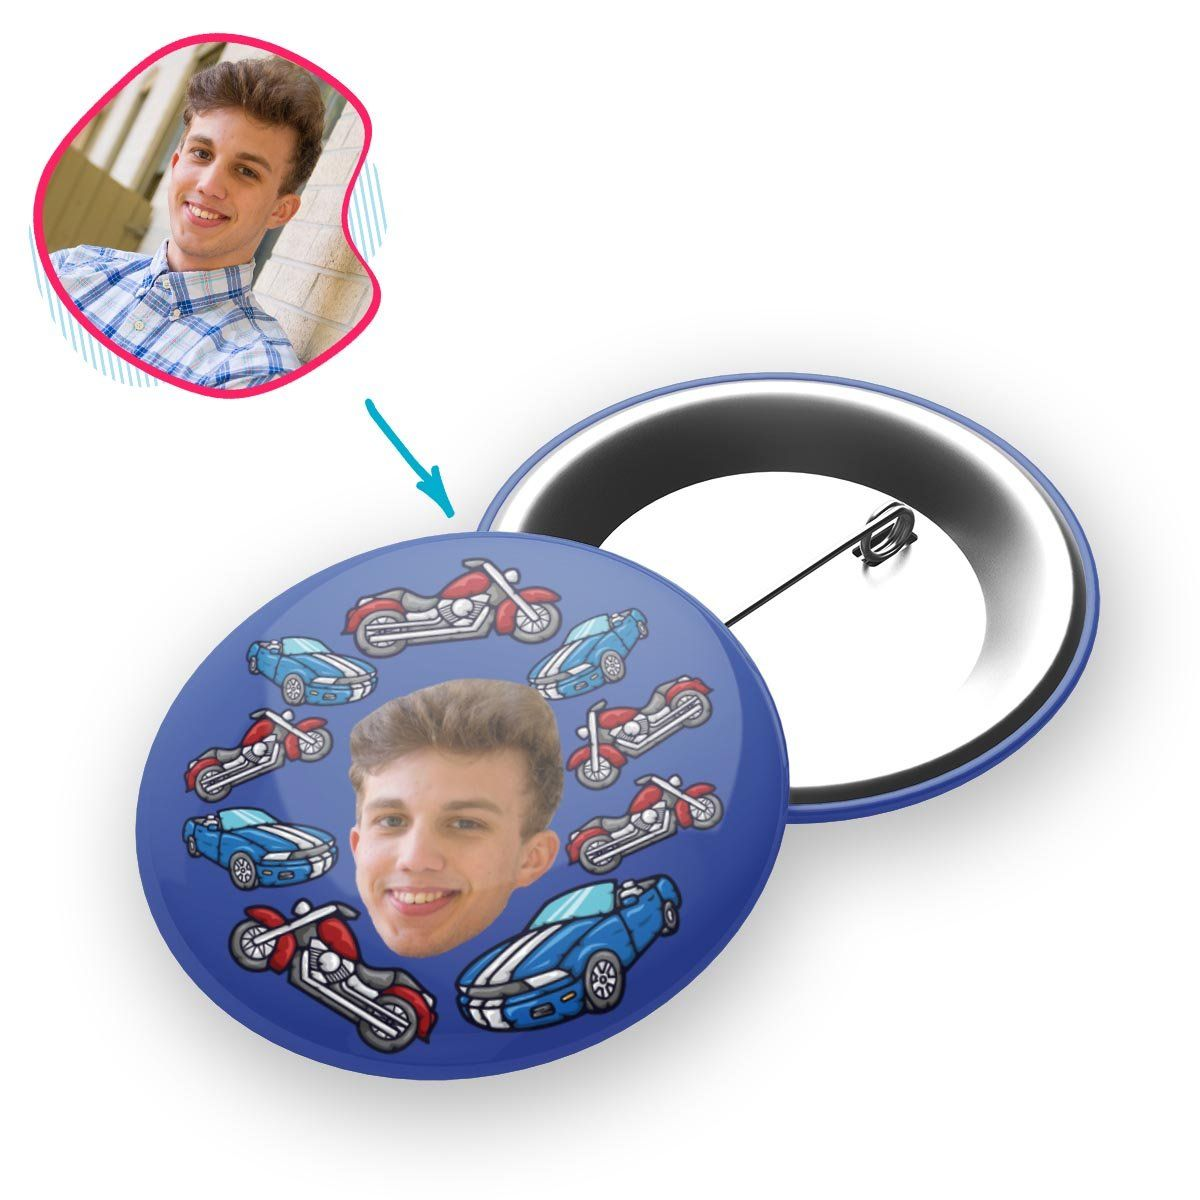 Darkblue Cars & Motorbikes personalized pin with photo of face printed on it